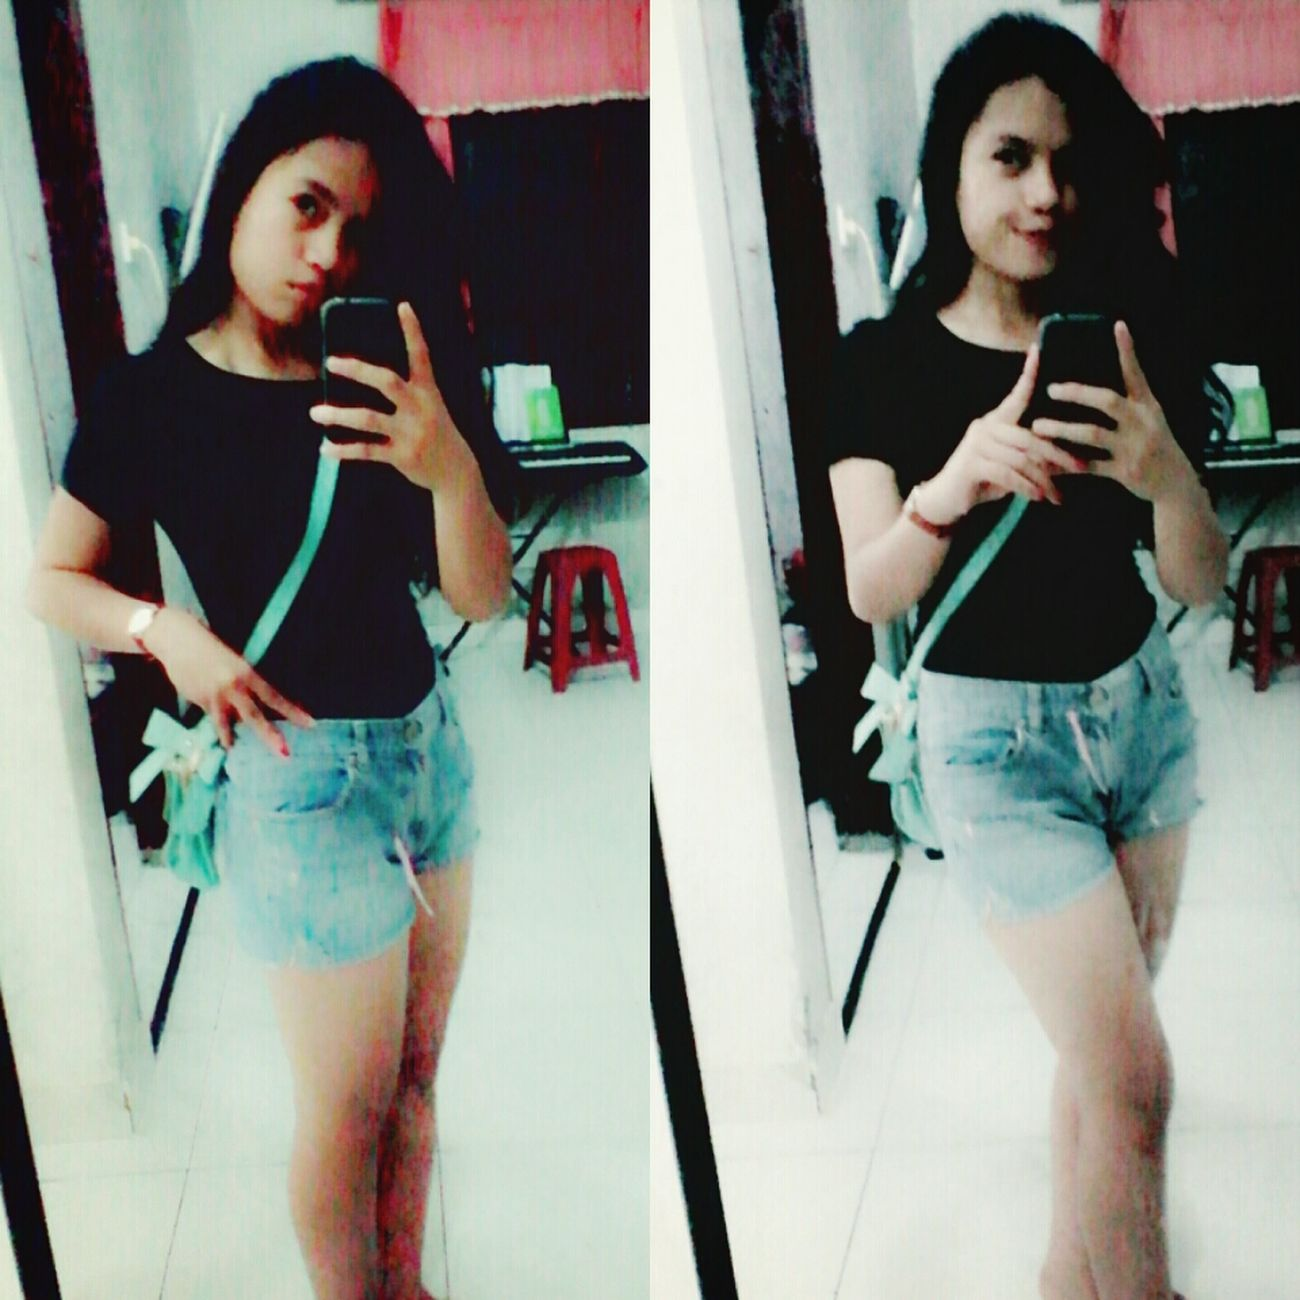 The good time Mirrorselfie Lifeissoshortjustenjoy ♥ Blackshirt